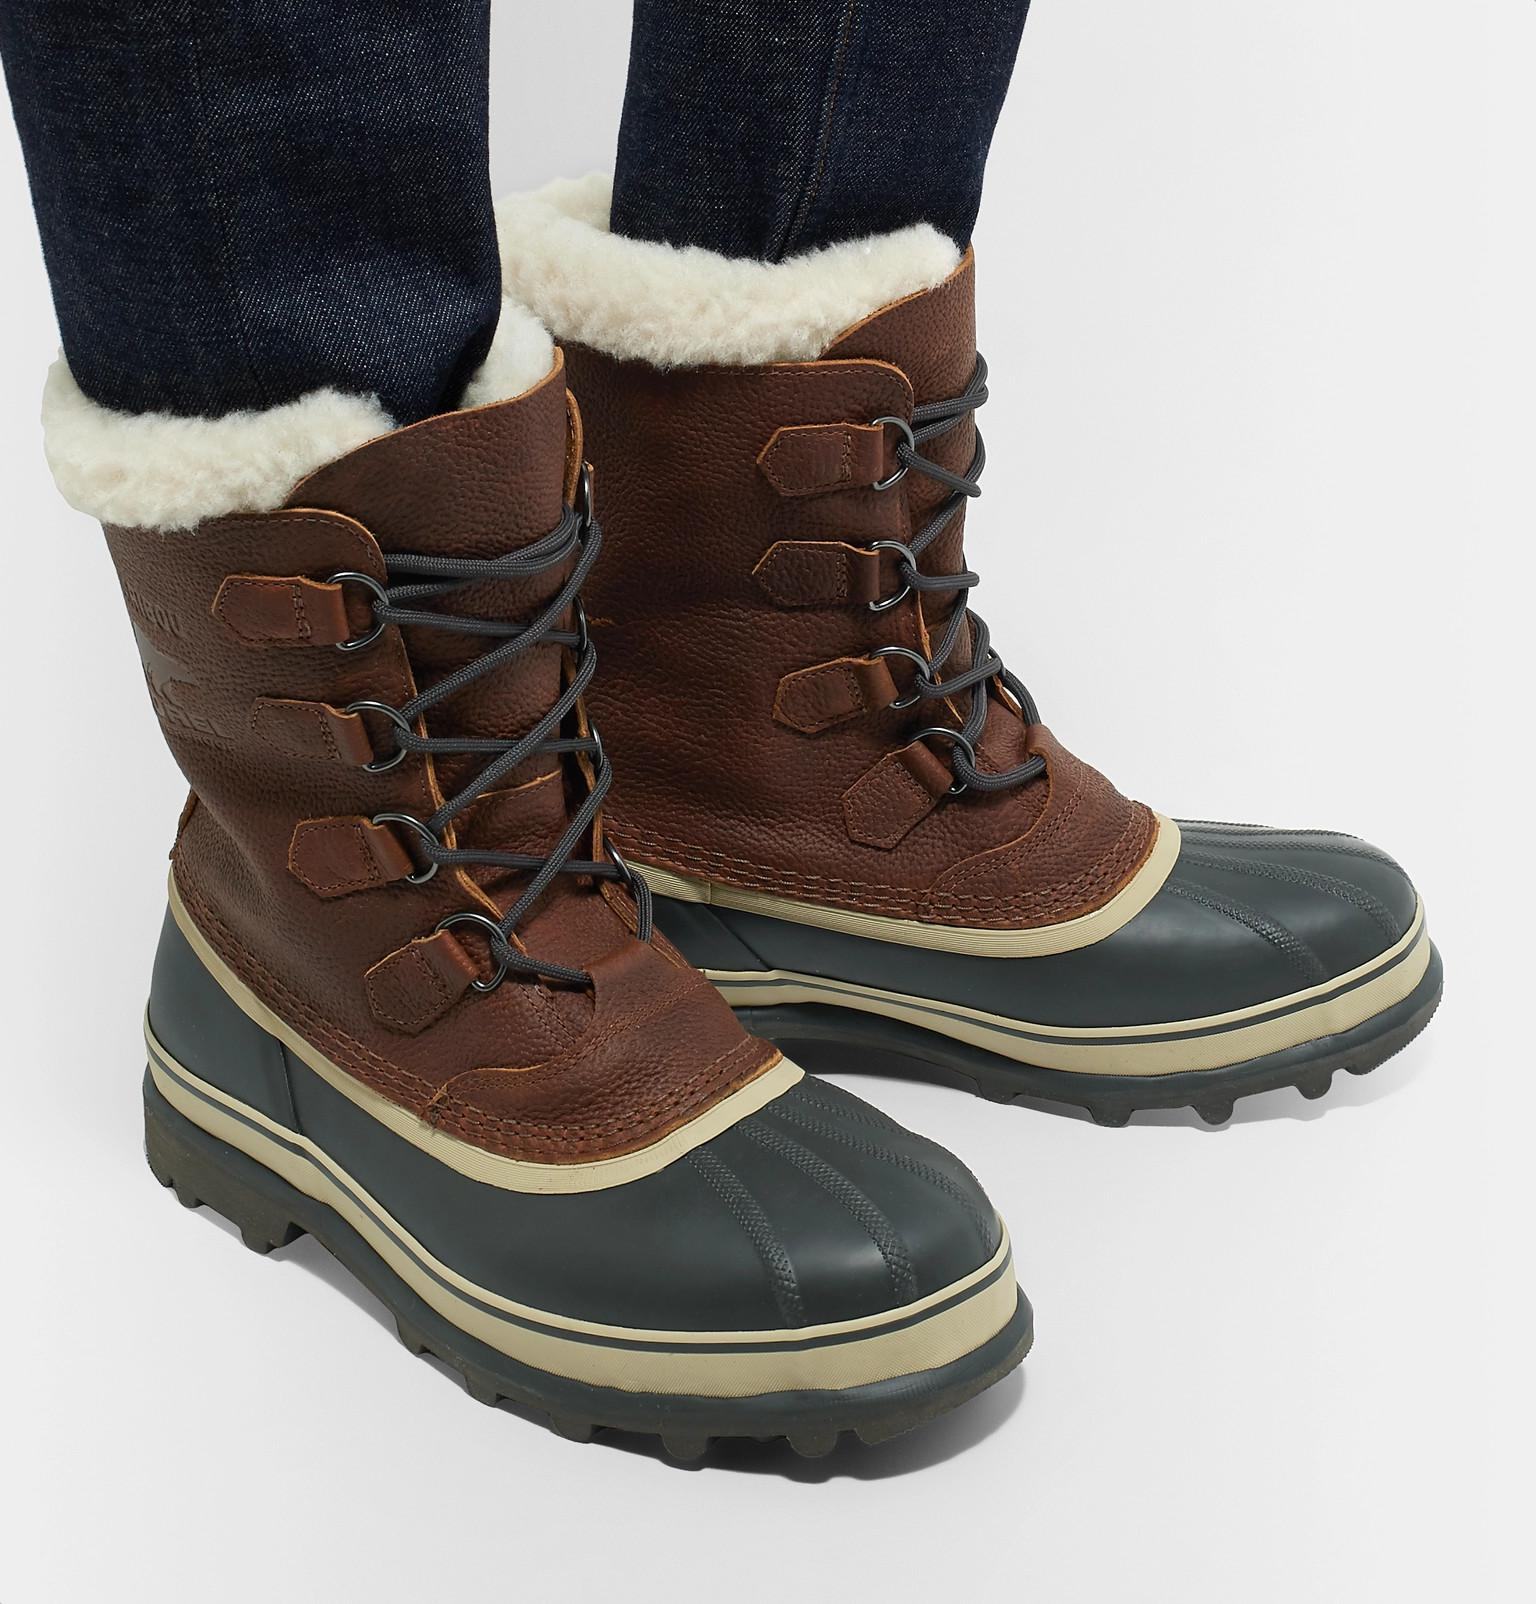 289bc60dd47 Sorel Brown Caribou Faux Shearling-trimmed Waterproof Leather And Rubber  Snow Boots for men